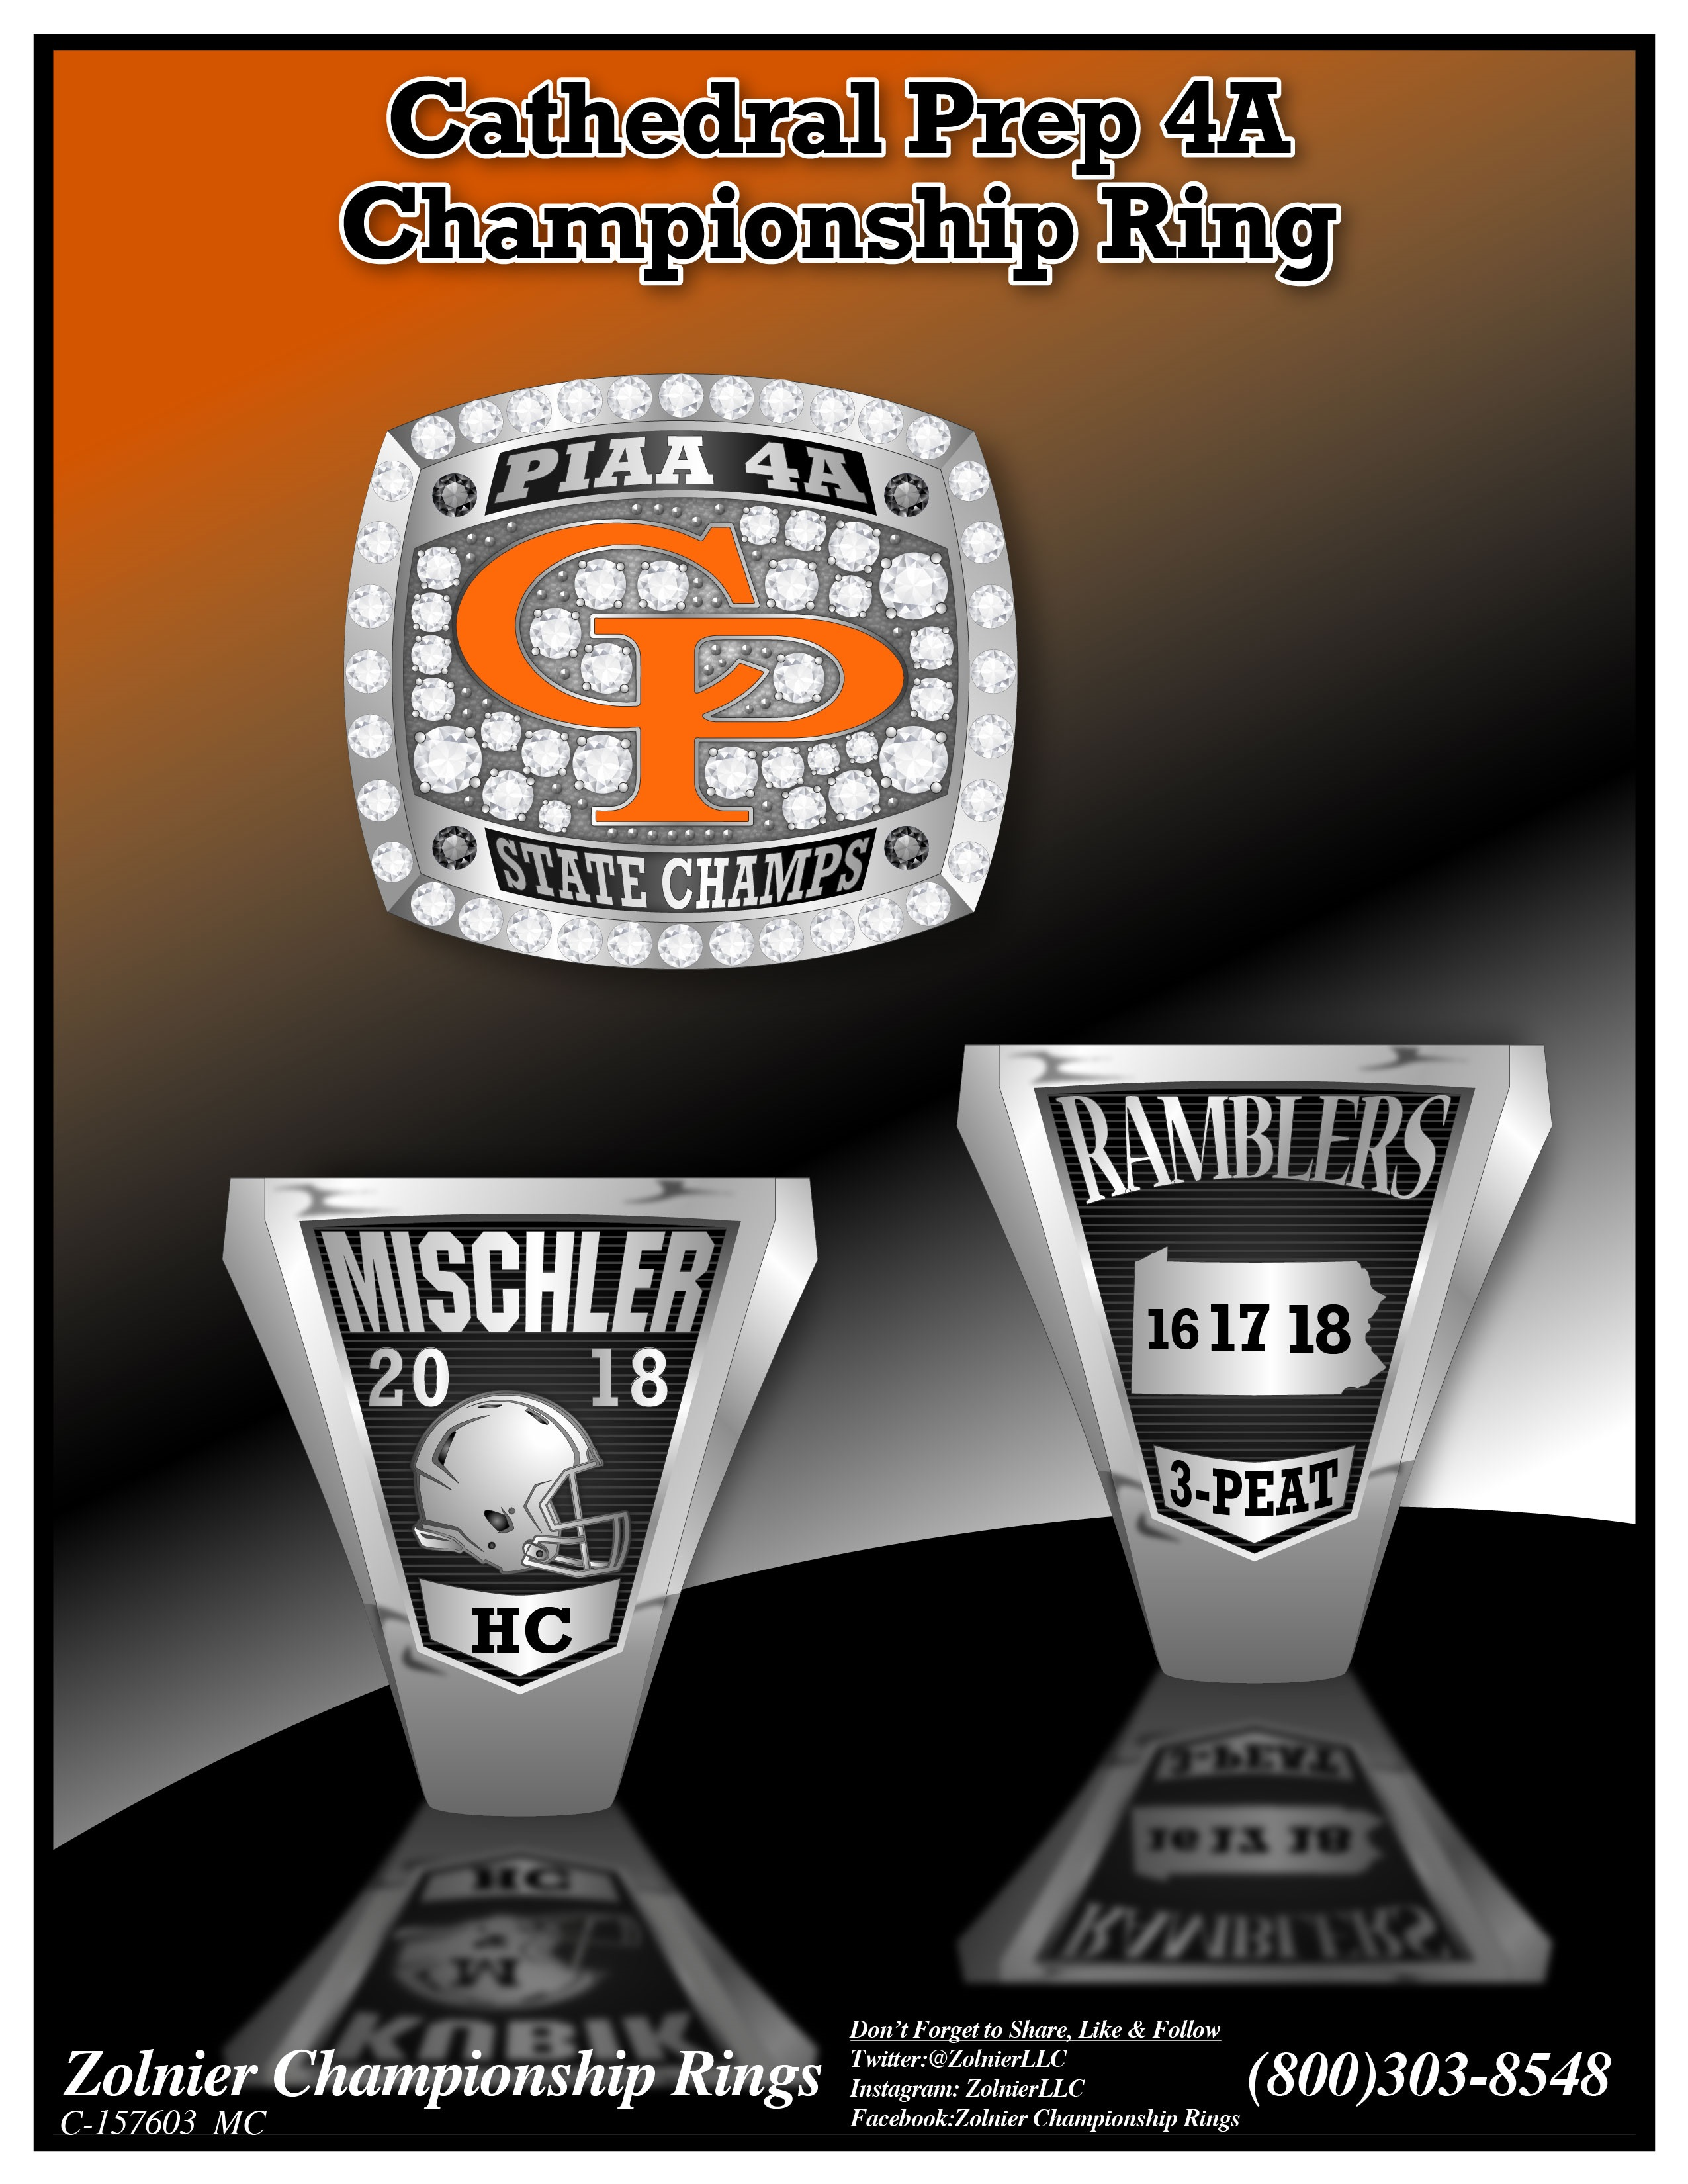 C-157603 Cathedral Prep Football Champ Ring